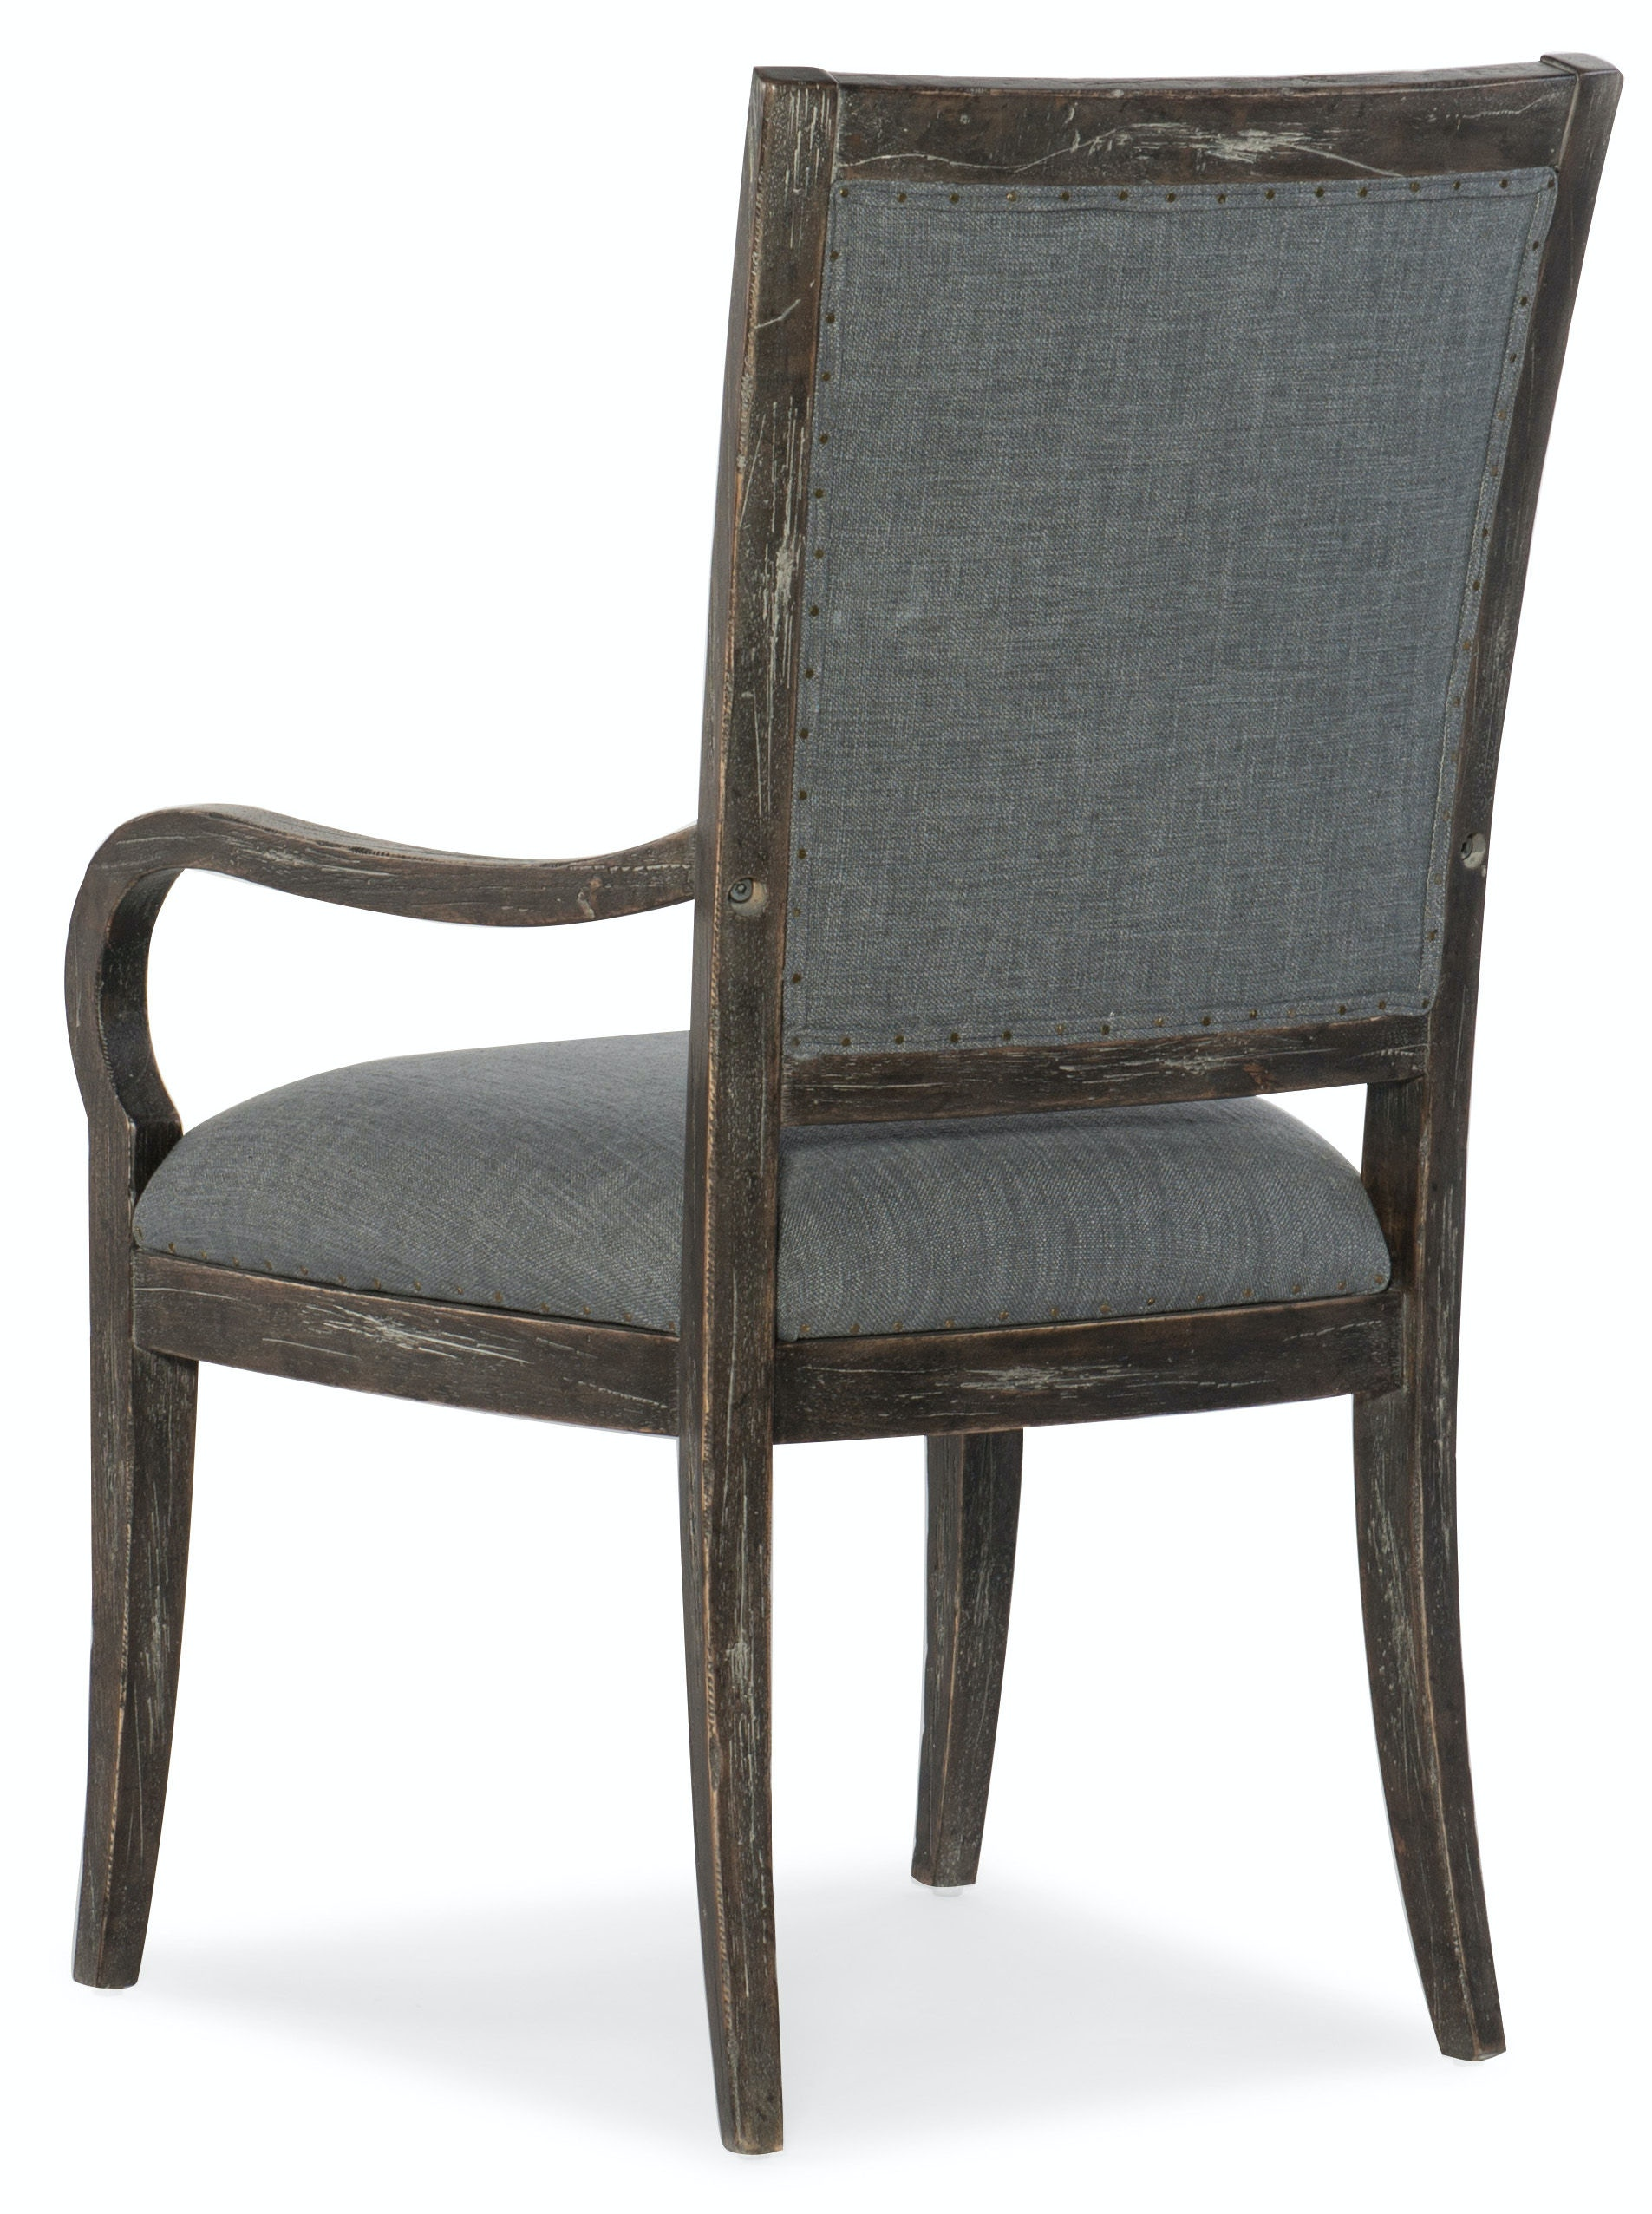 Hooker Furniture Beaumont Upholstered Arm Chair 5751 75400 89